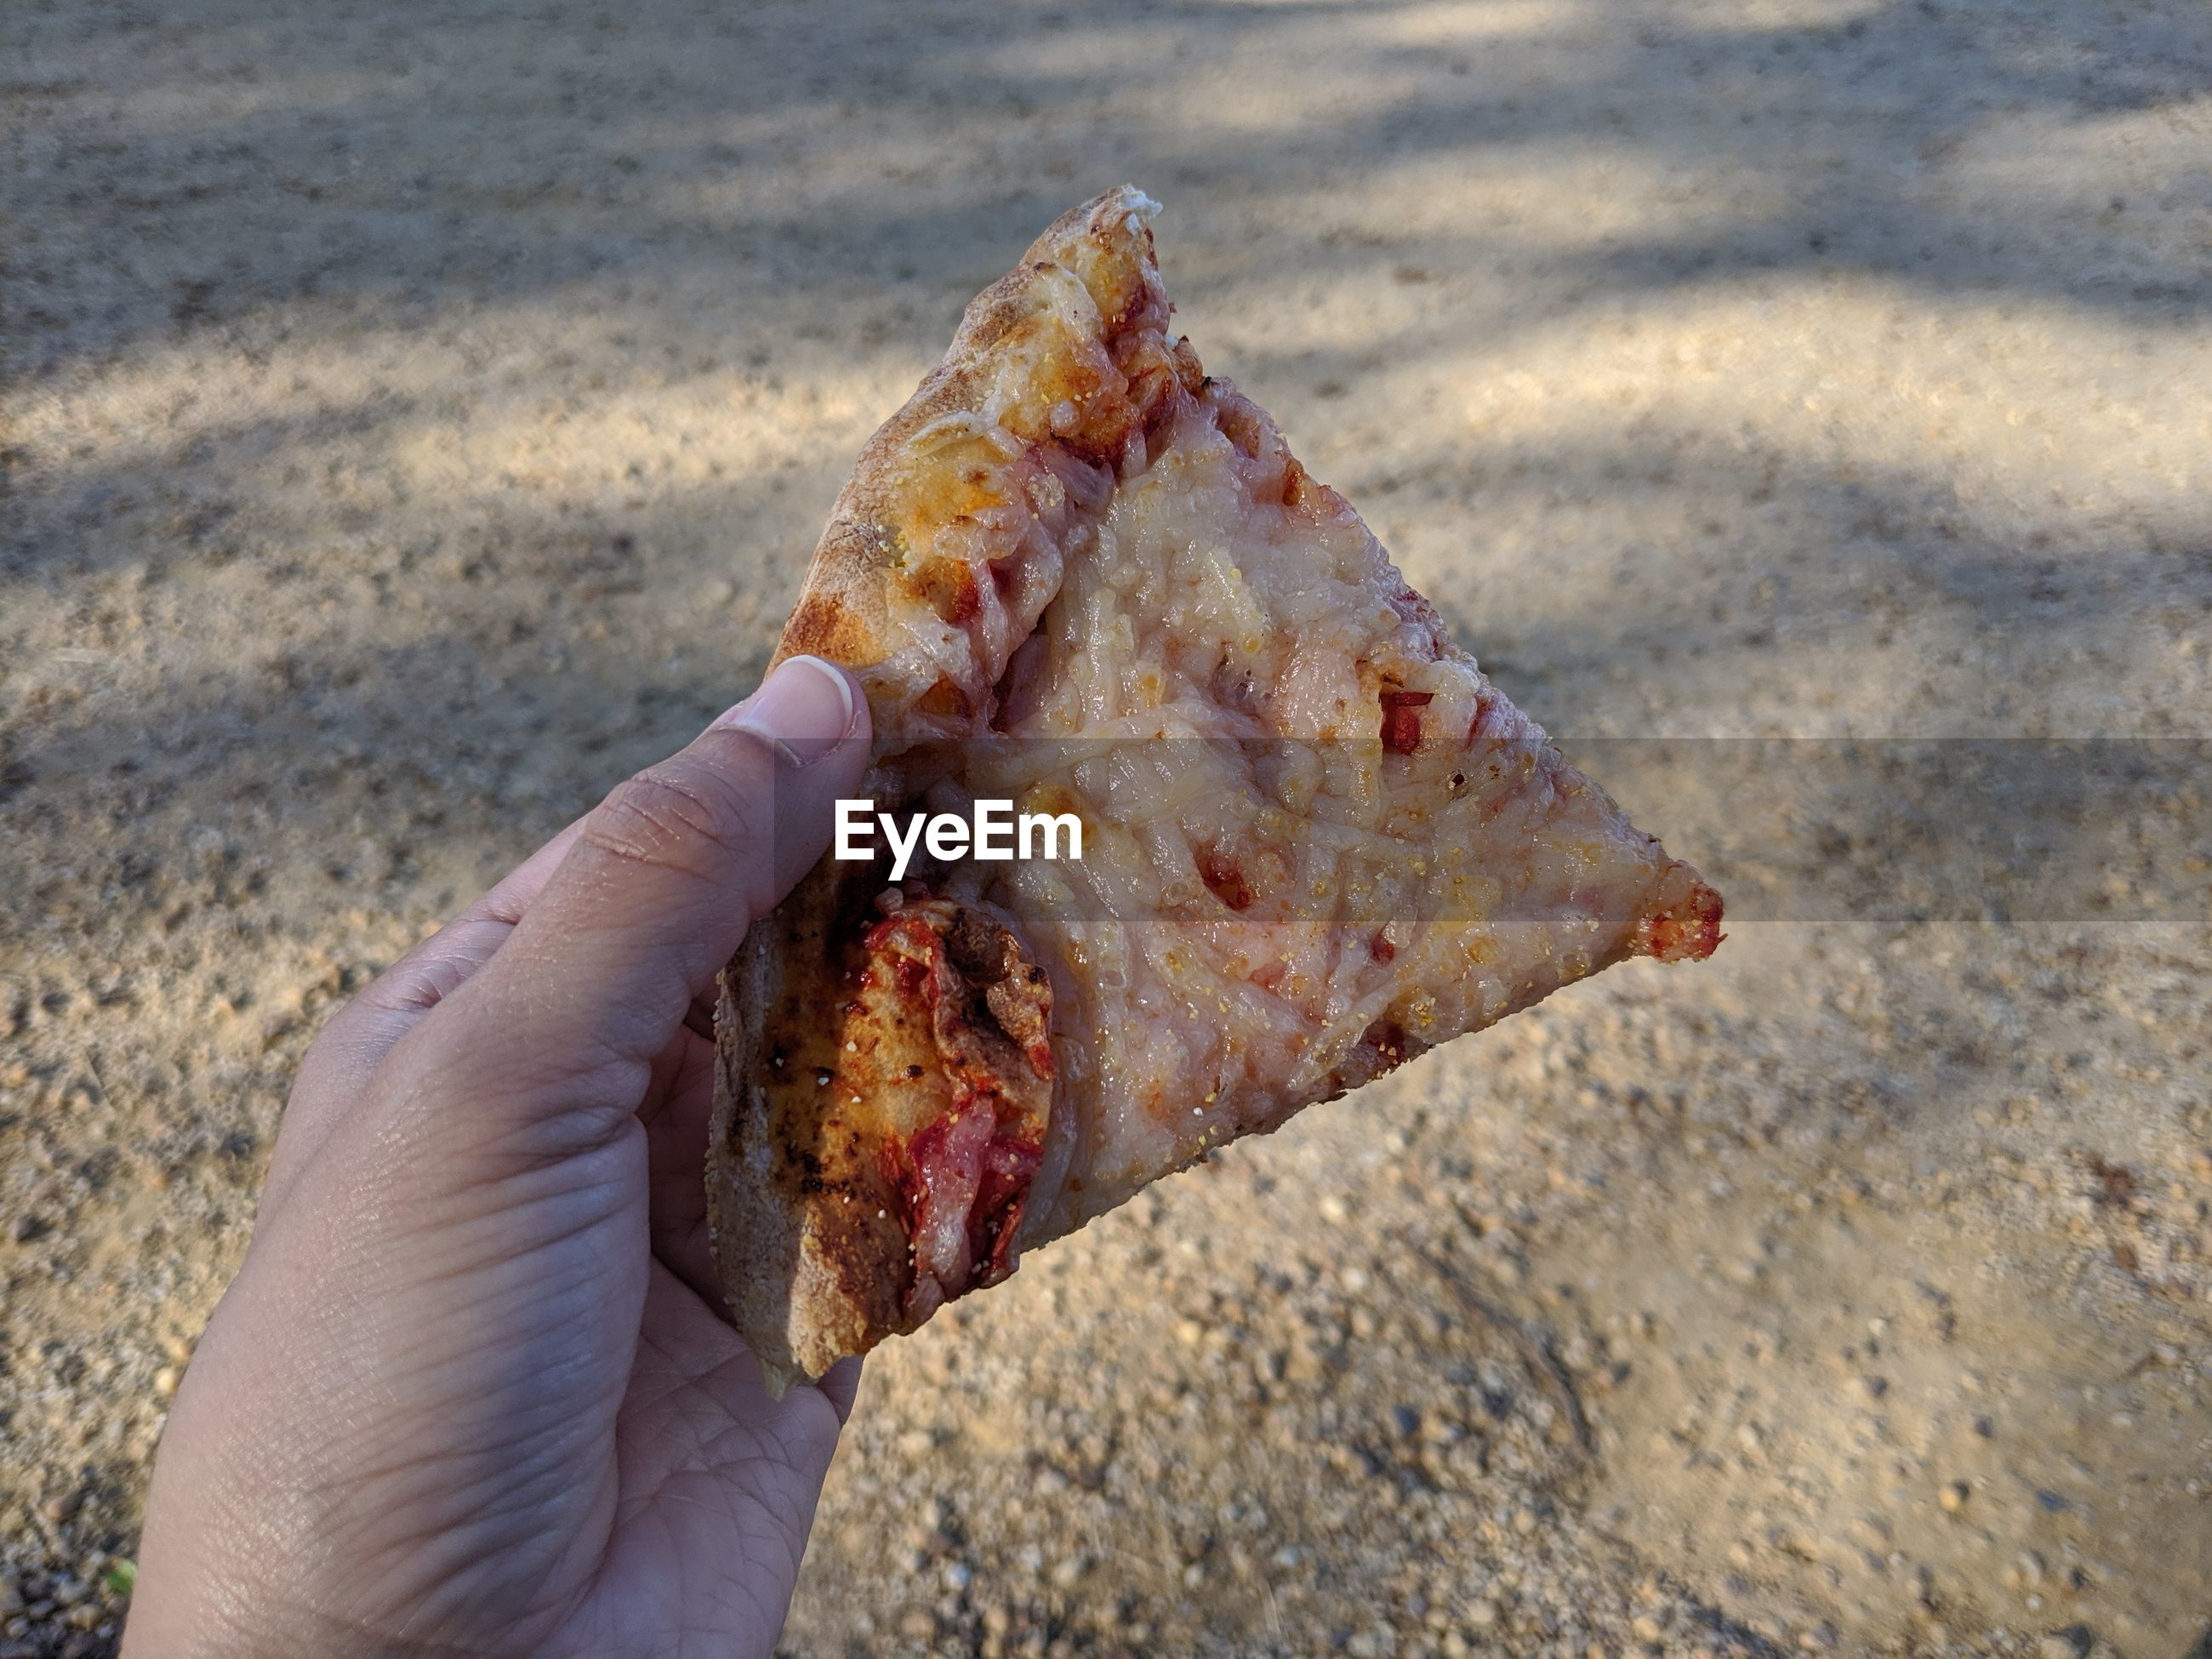 Pizza in hand, outdoors